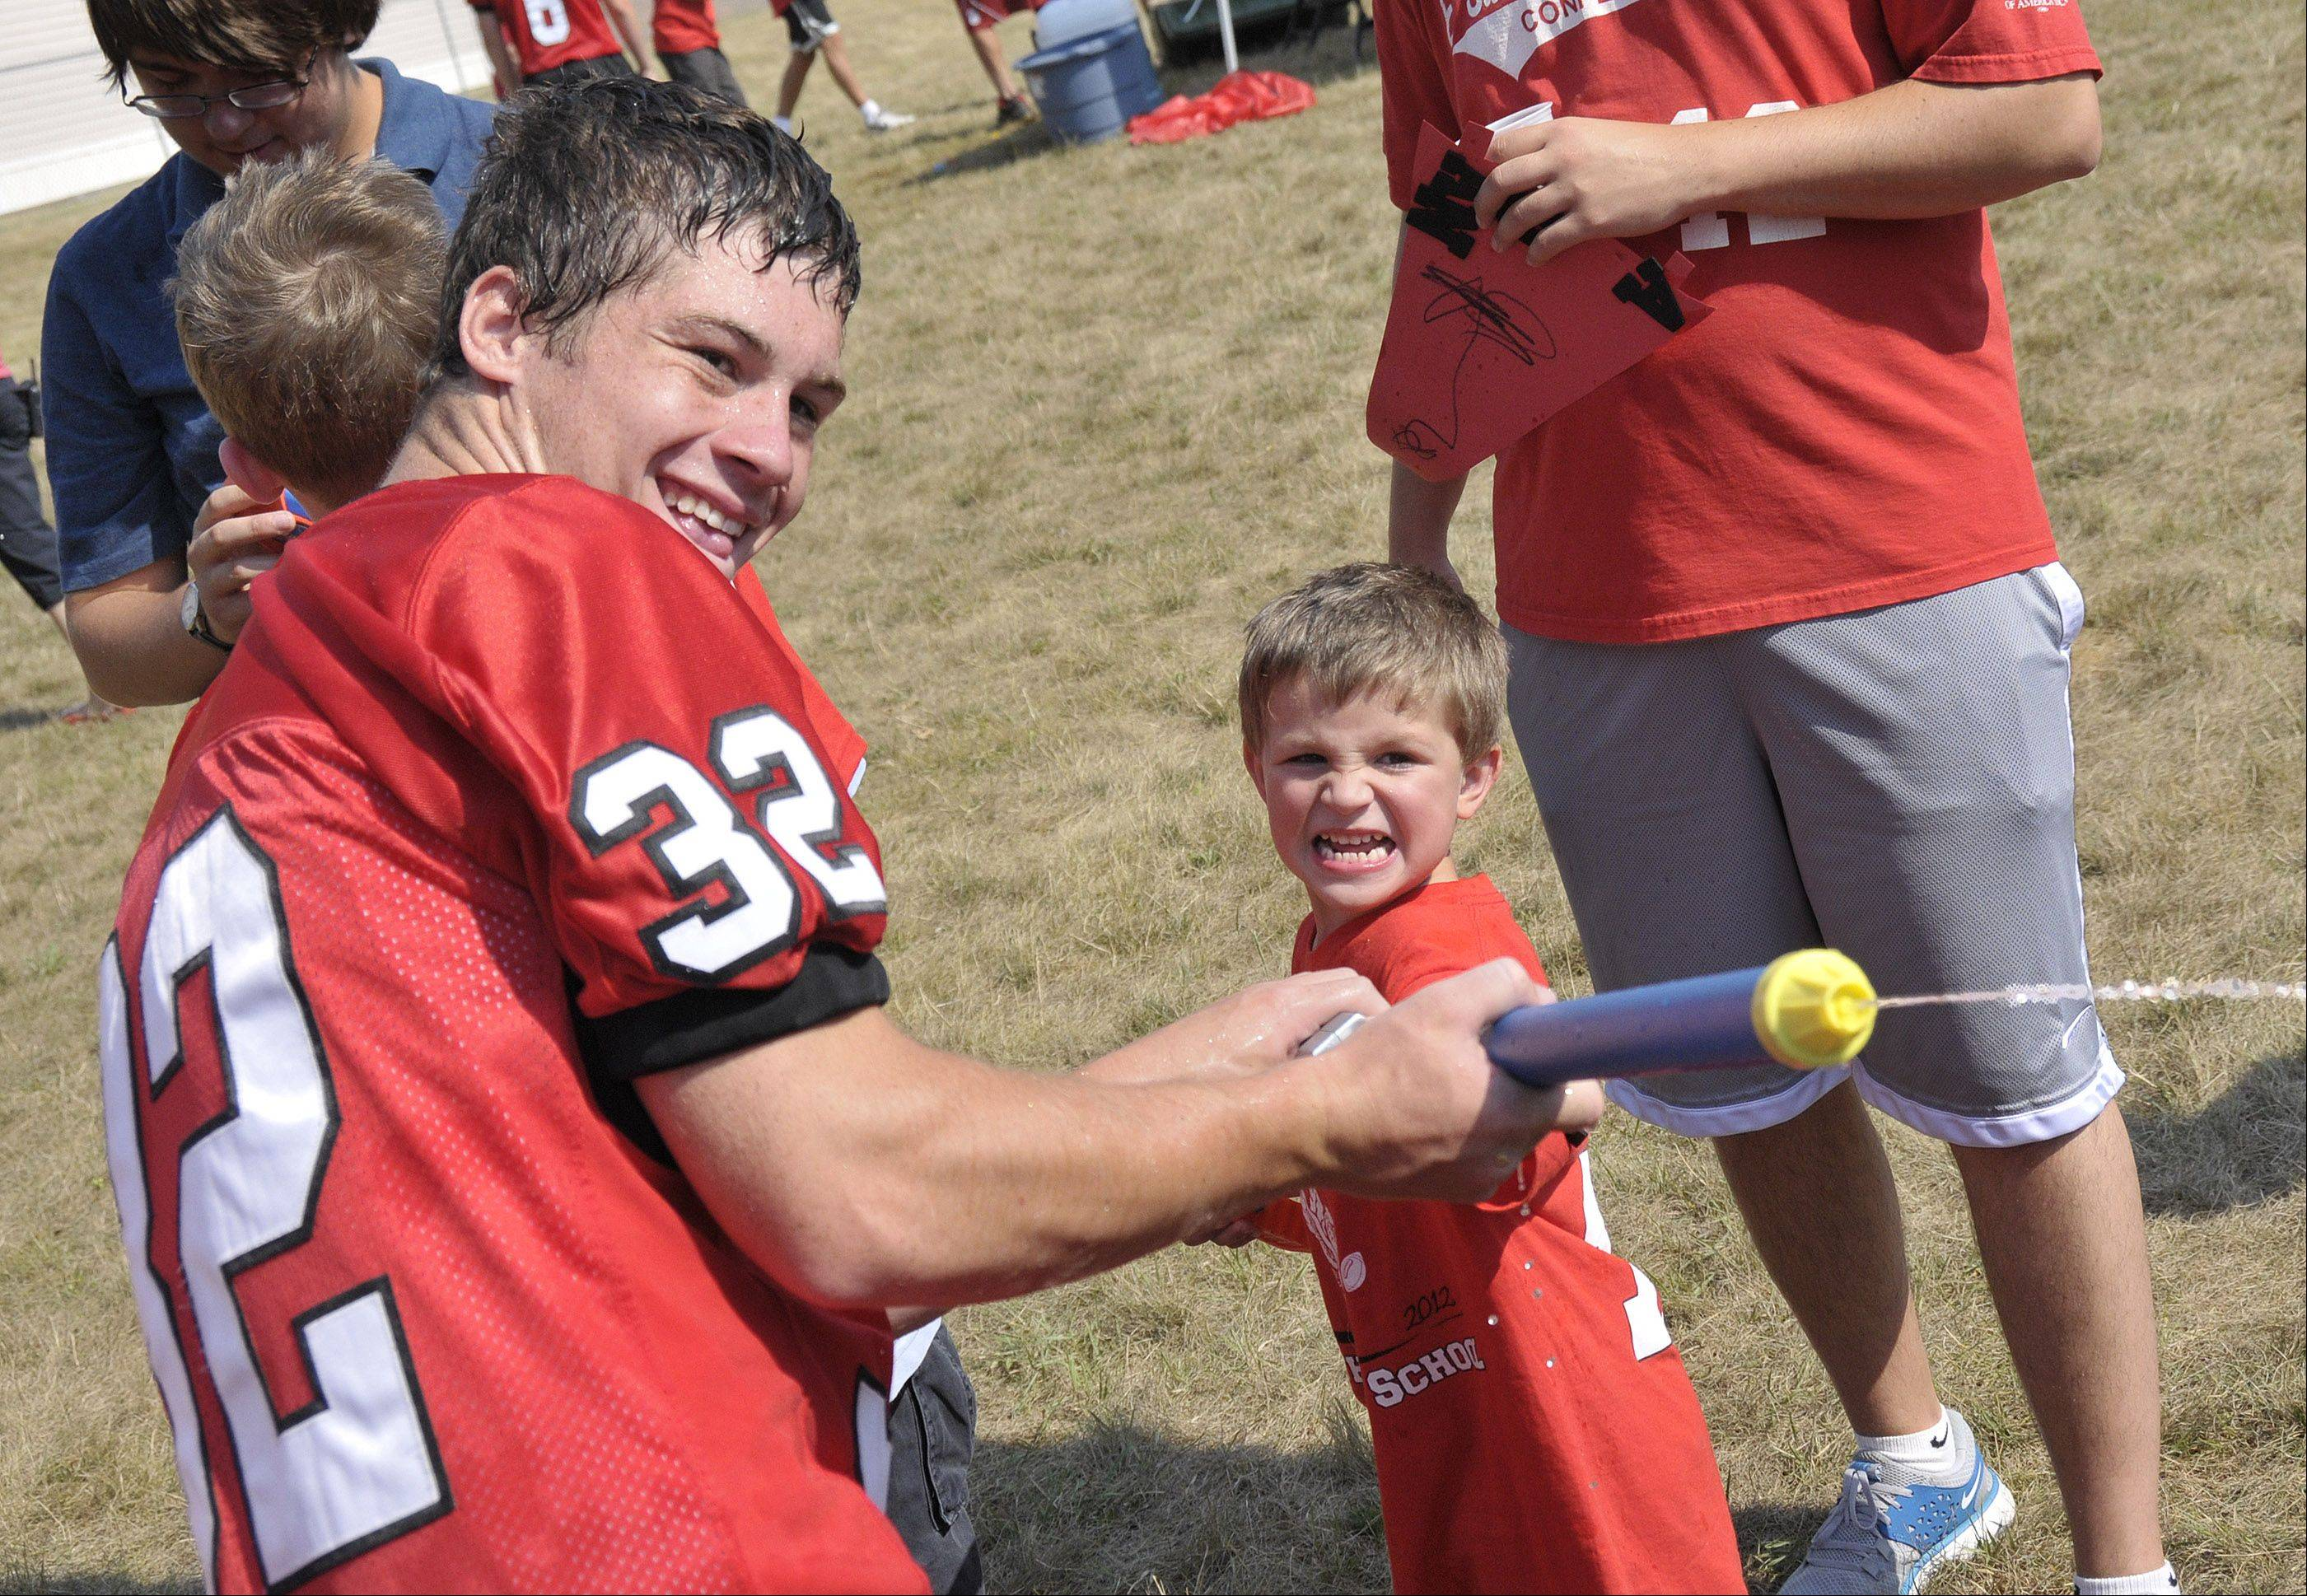 Benet Academy football players helped Southeast School students in Naperville become an 'all star player for a day' Friday morning. They showed the kids some of their football moves and enjoyed other games and activities with them. Benet cornerback Danny Lawler, left, and Southeast student Aidan, (last name withheld) to battle other attendees with water guns.